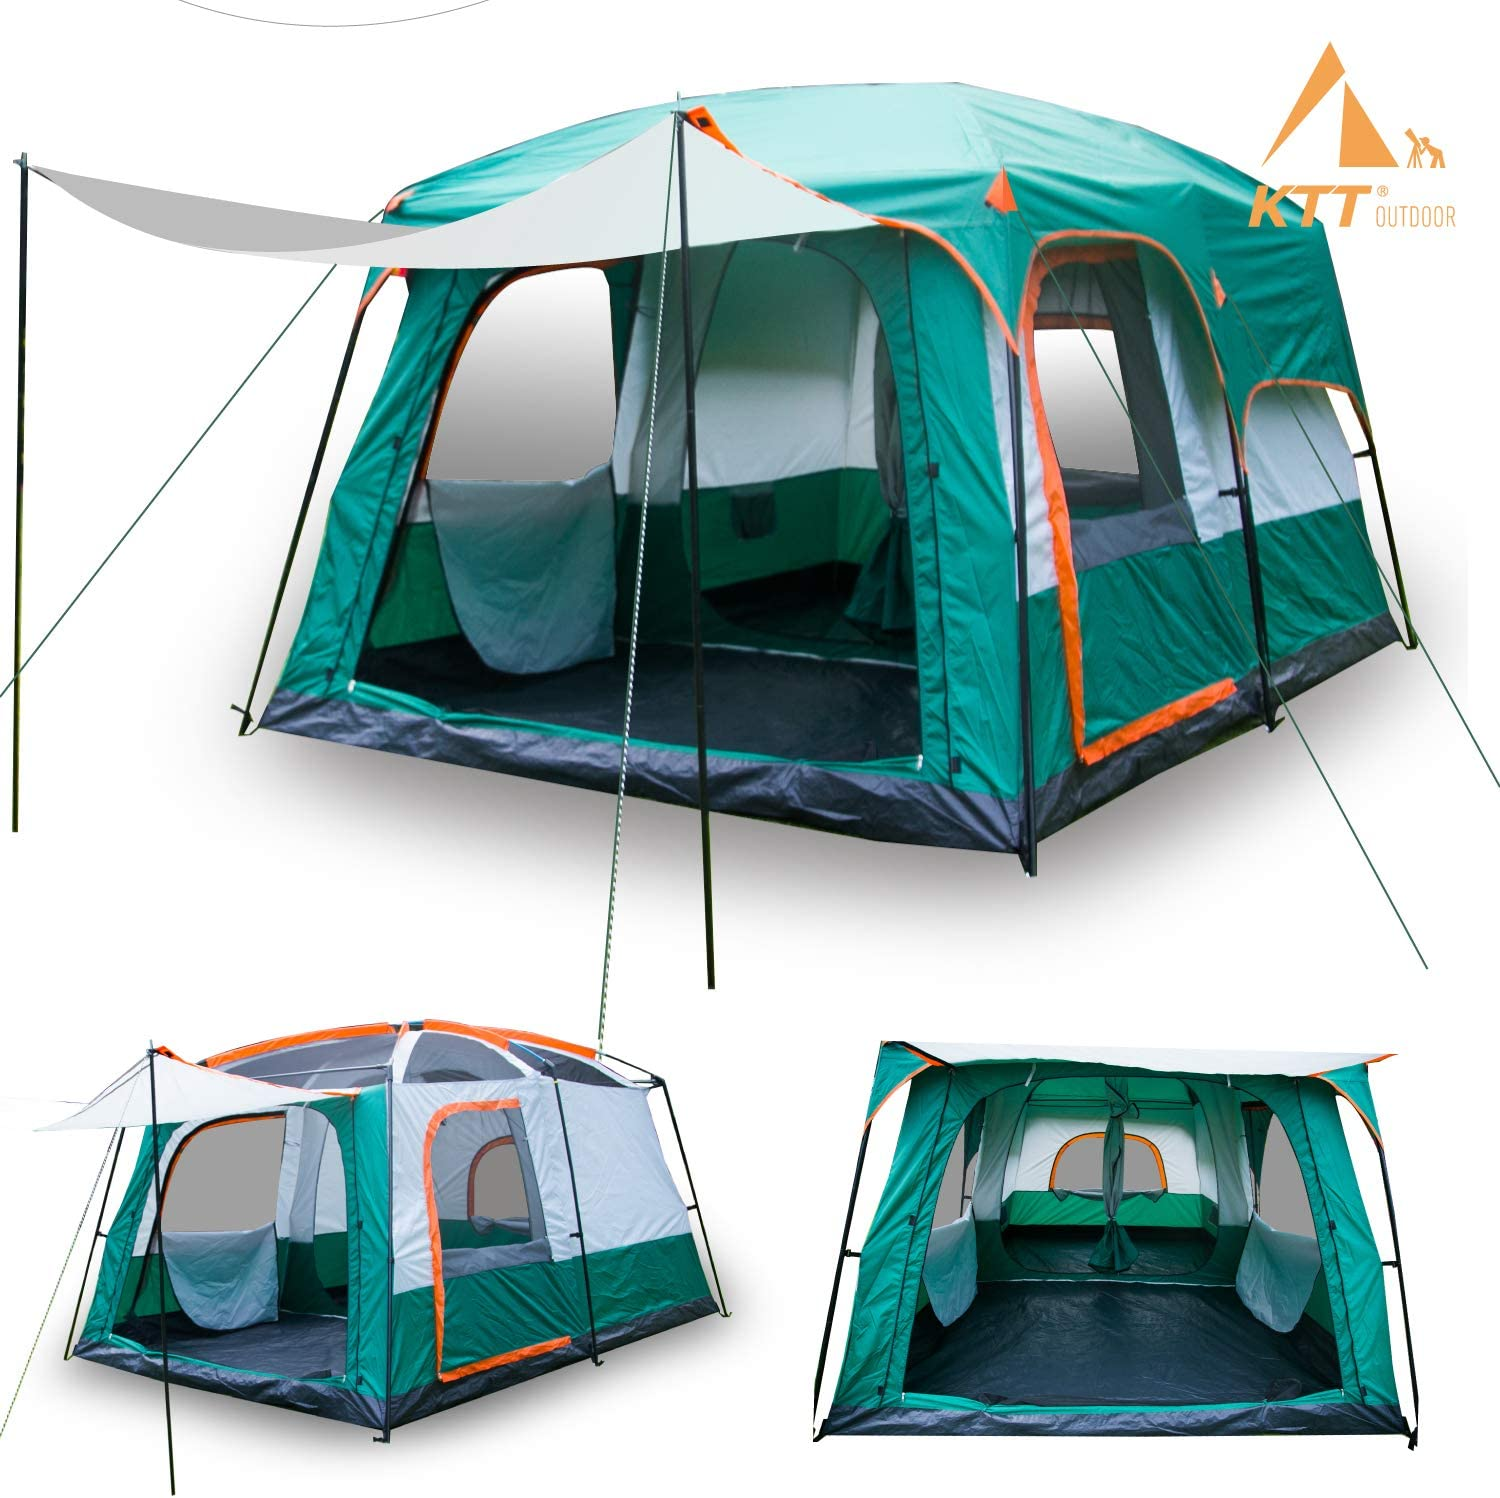 Amazon.com : KTT Large Tent 8~10 Person, Family Cabin Tents for Camping, Waterproof, 2 Rooms, Double Layer, 3 Doors and 3 Window with Mesh, Big Tent for Outdoor, Picnic, Camping, Family, Friends